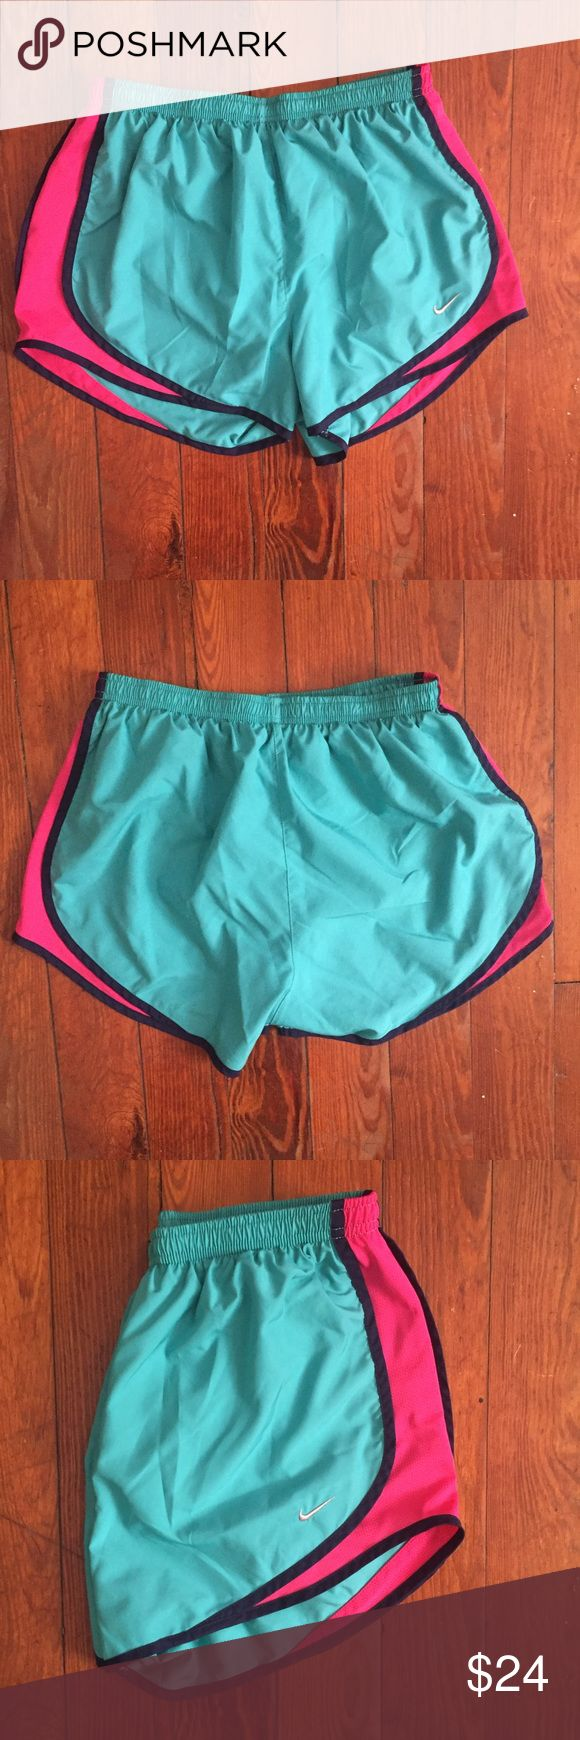 Nike Dri-Fit Teal Shorts Teal Nike shorts with magenta stripe. Size M. Nike Shorts